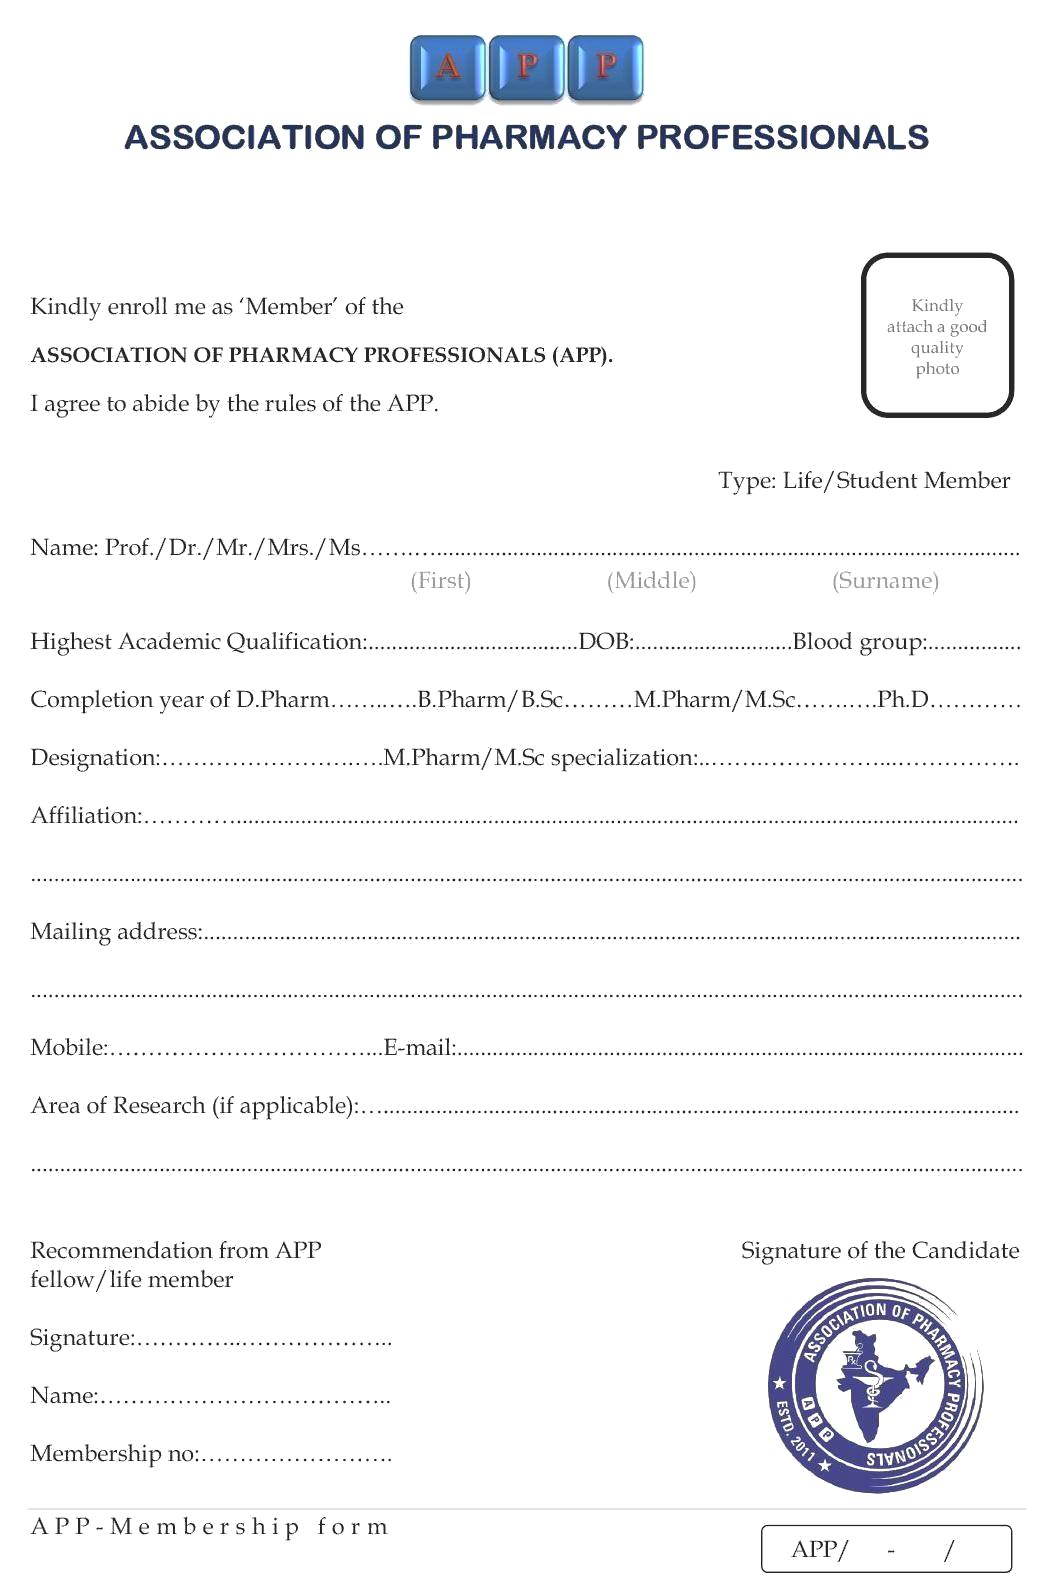 Pta membership form template membership form thecheapjerseys Gallery